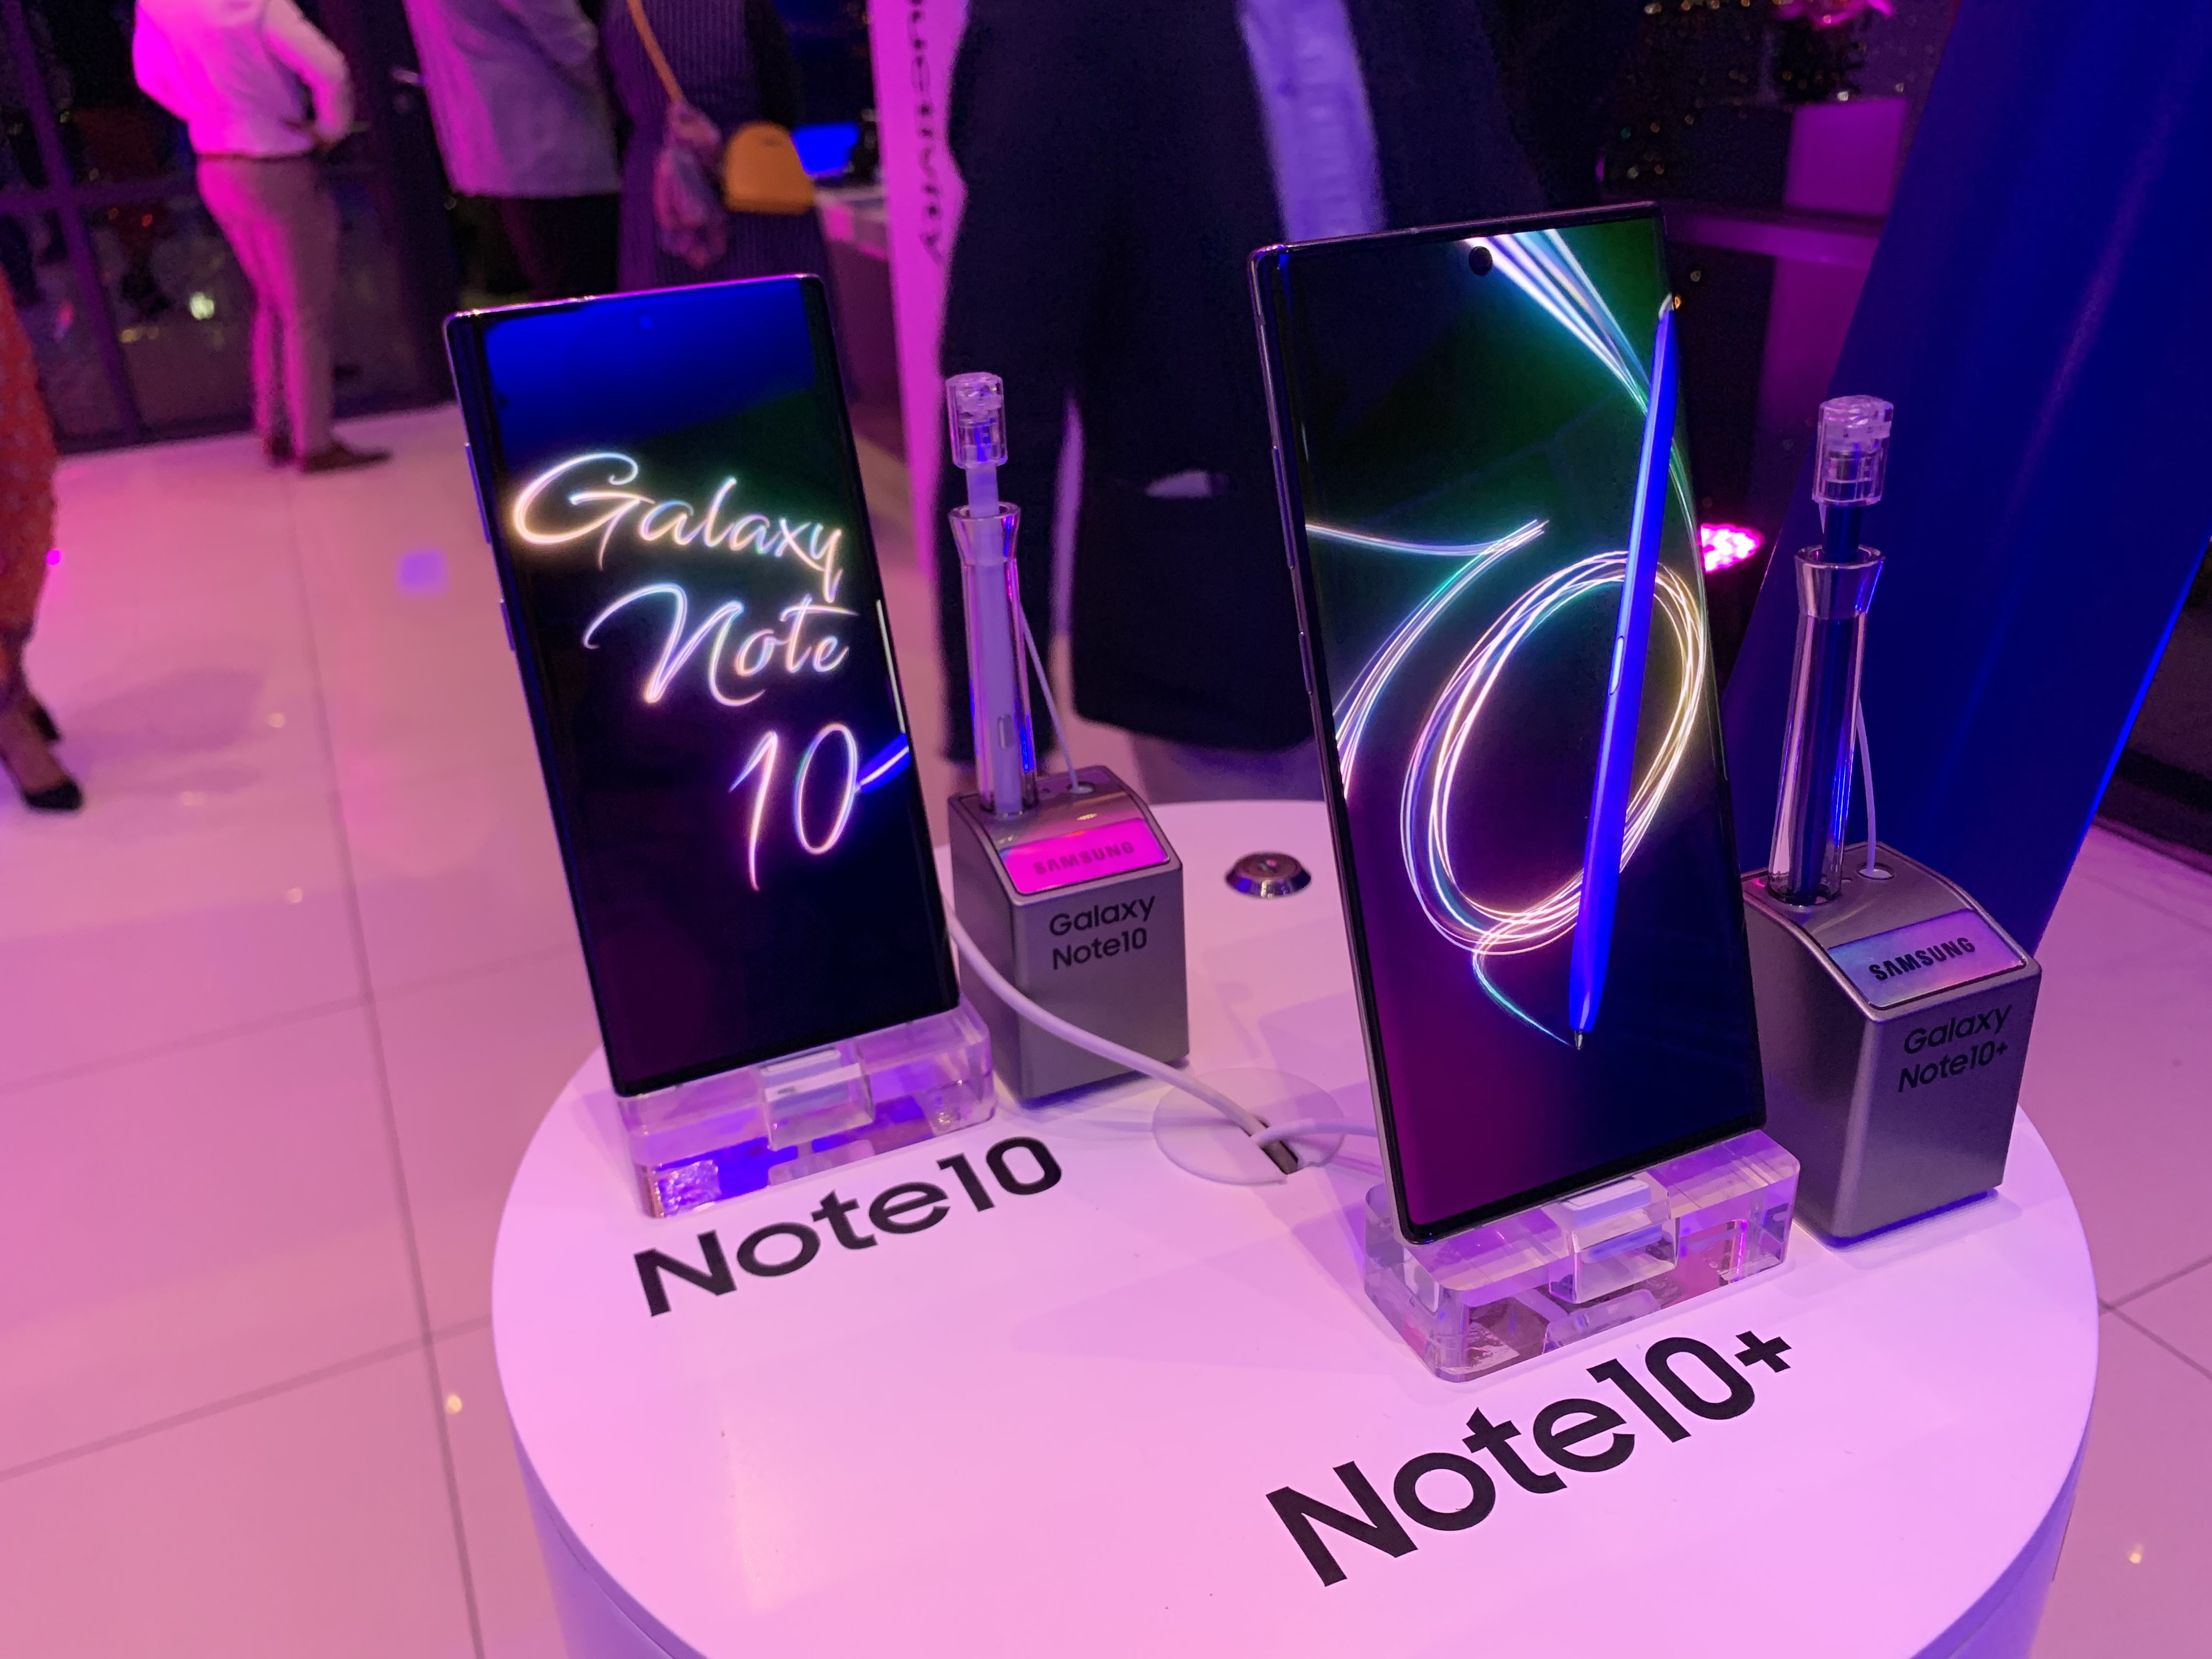 Samsung Note 10 pushes edge – Gadget